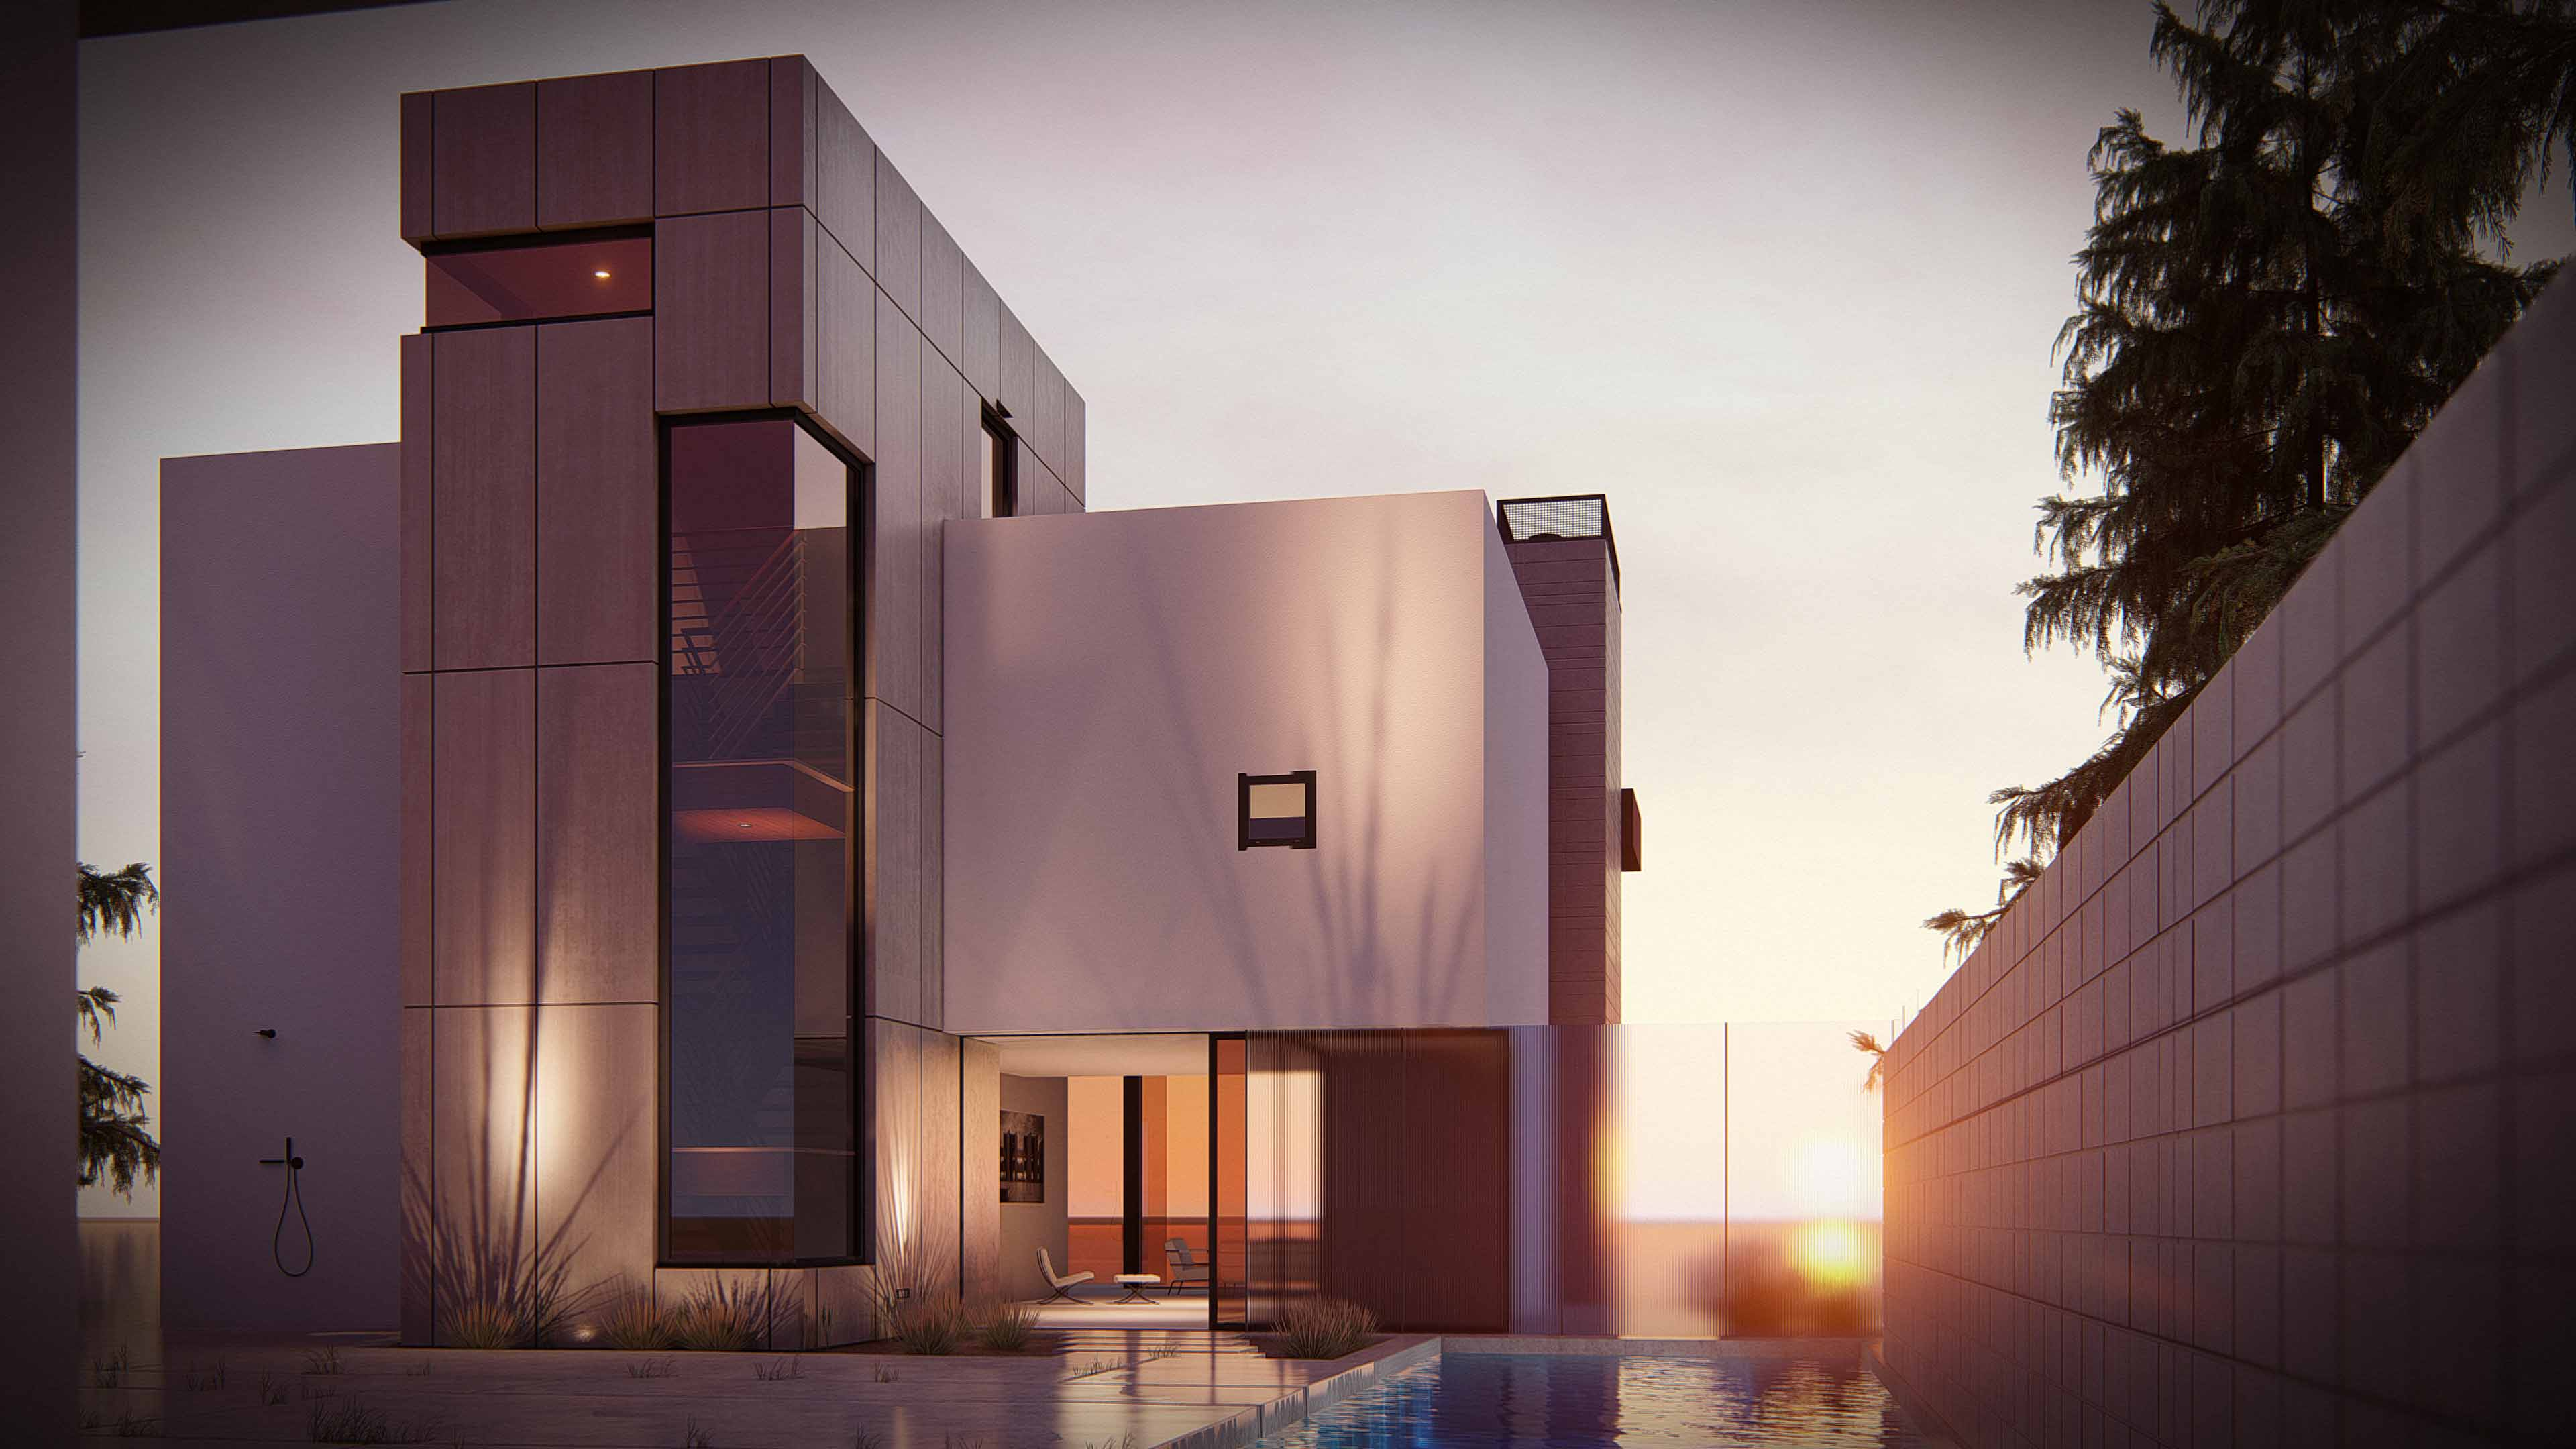 House Building Simulator Lumion South Africa Beautiful Renders